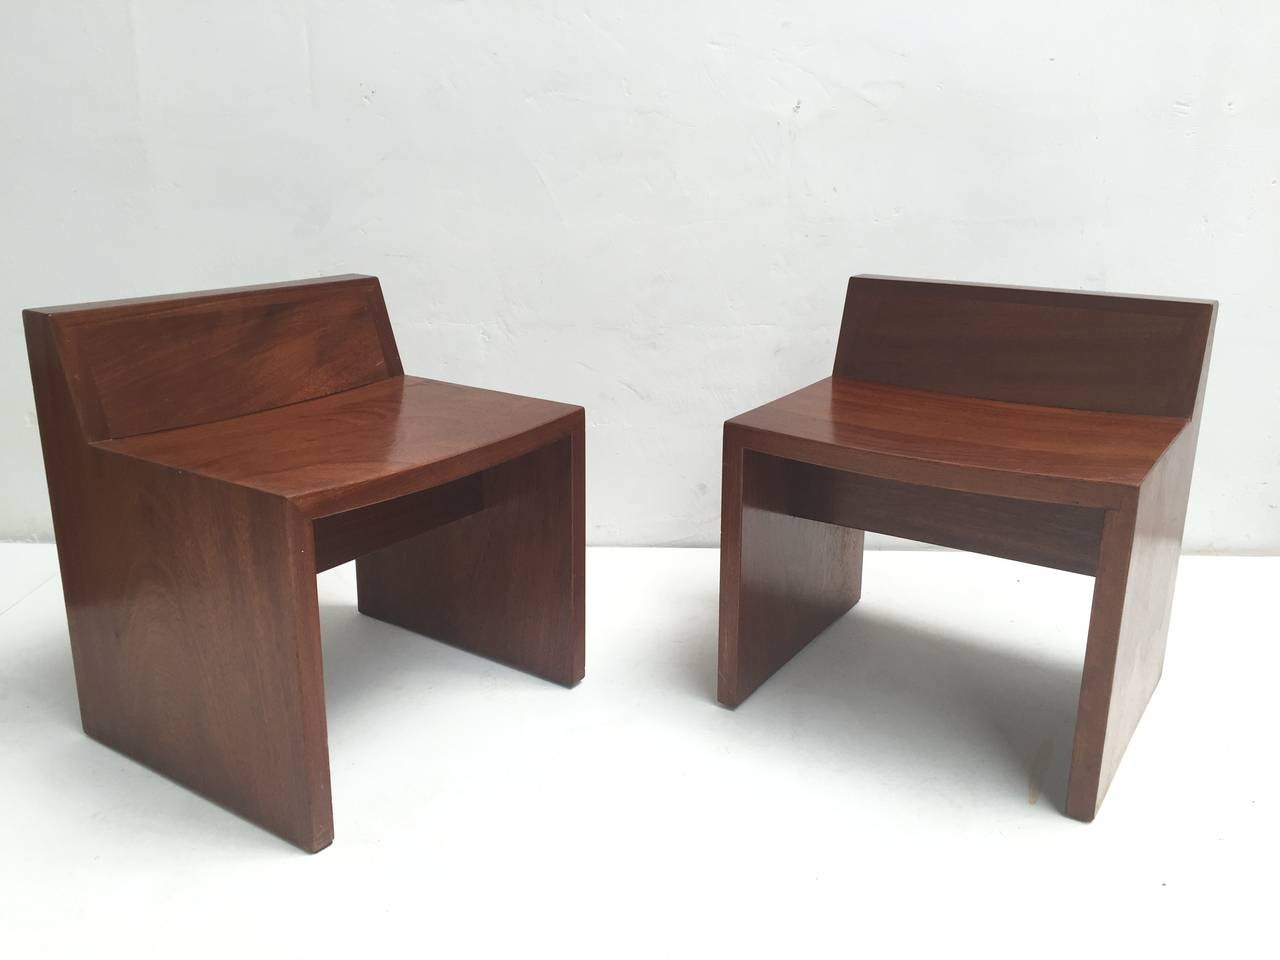 Unique Set of Solid Mahogany Church Seats by Dutch Architect Harry Nefkens, 1963 For Sale 4